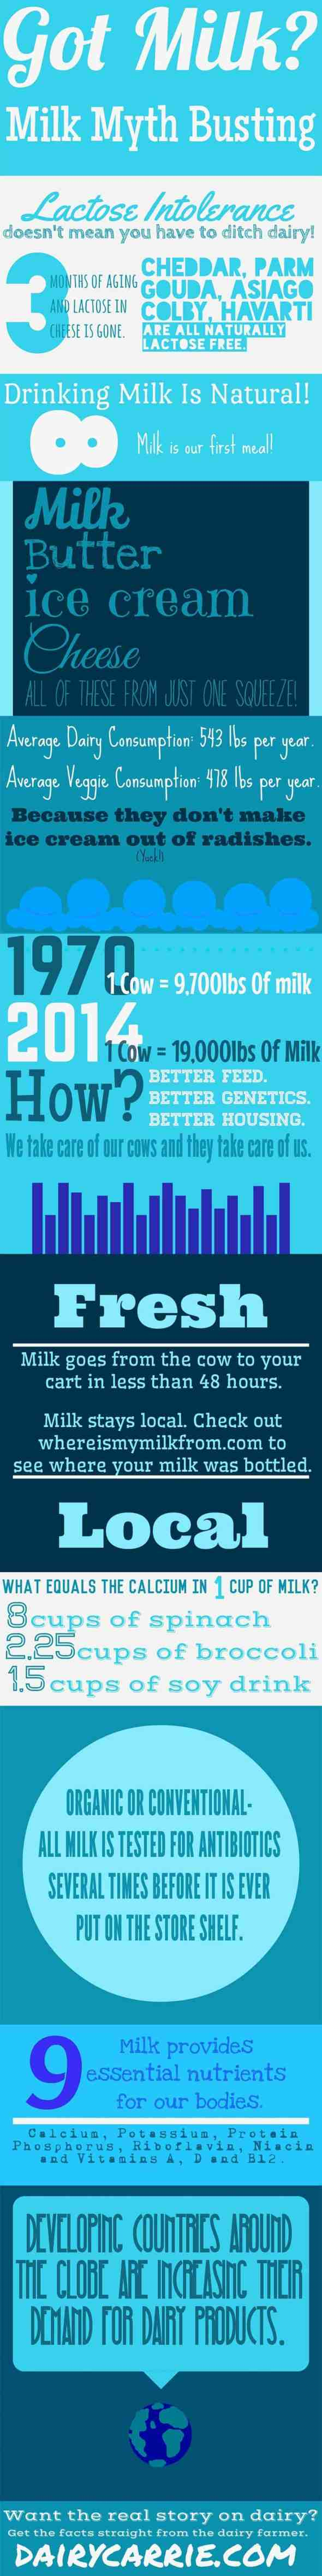 Got Milk? Milk Myth Busters from DairyCarrie.com - Have questions? Ask a dairy farmer!